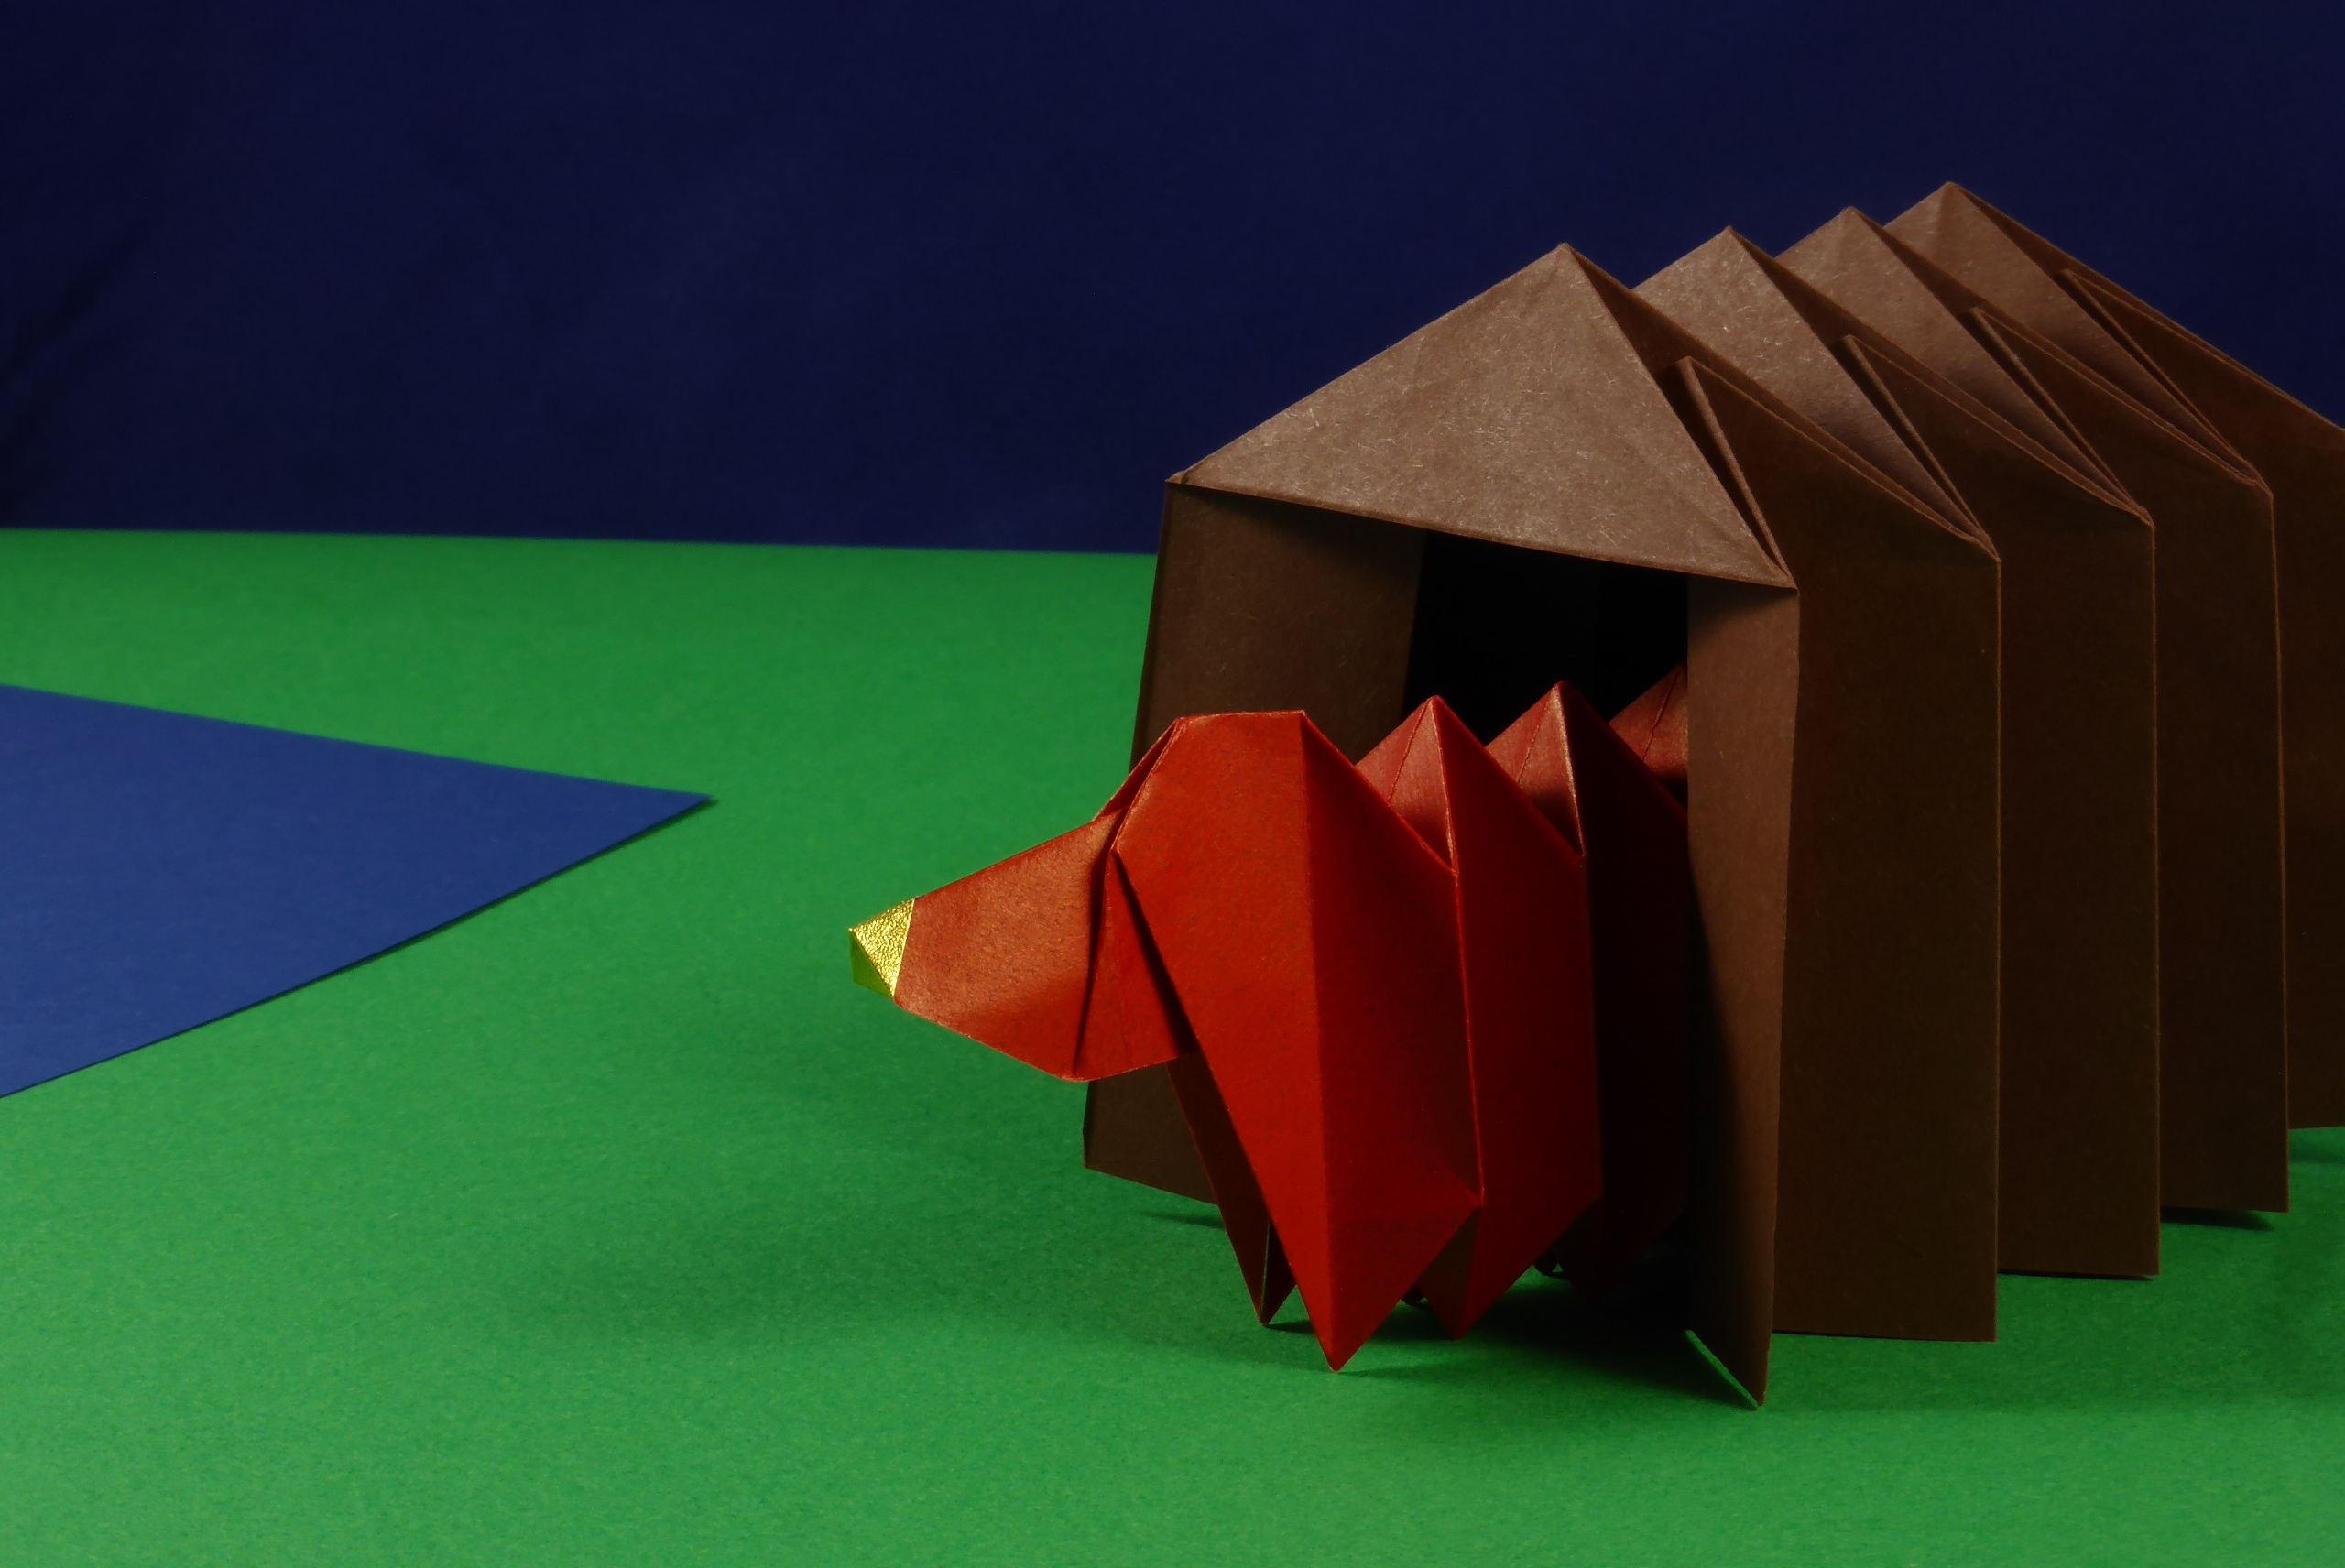 Modular Origami Architecture And Landscape Models Folded By Micha Diagrams Designs How To Fold An Dog House For Yara Yagis Dachshund Building Block Unit Bbu